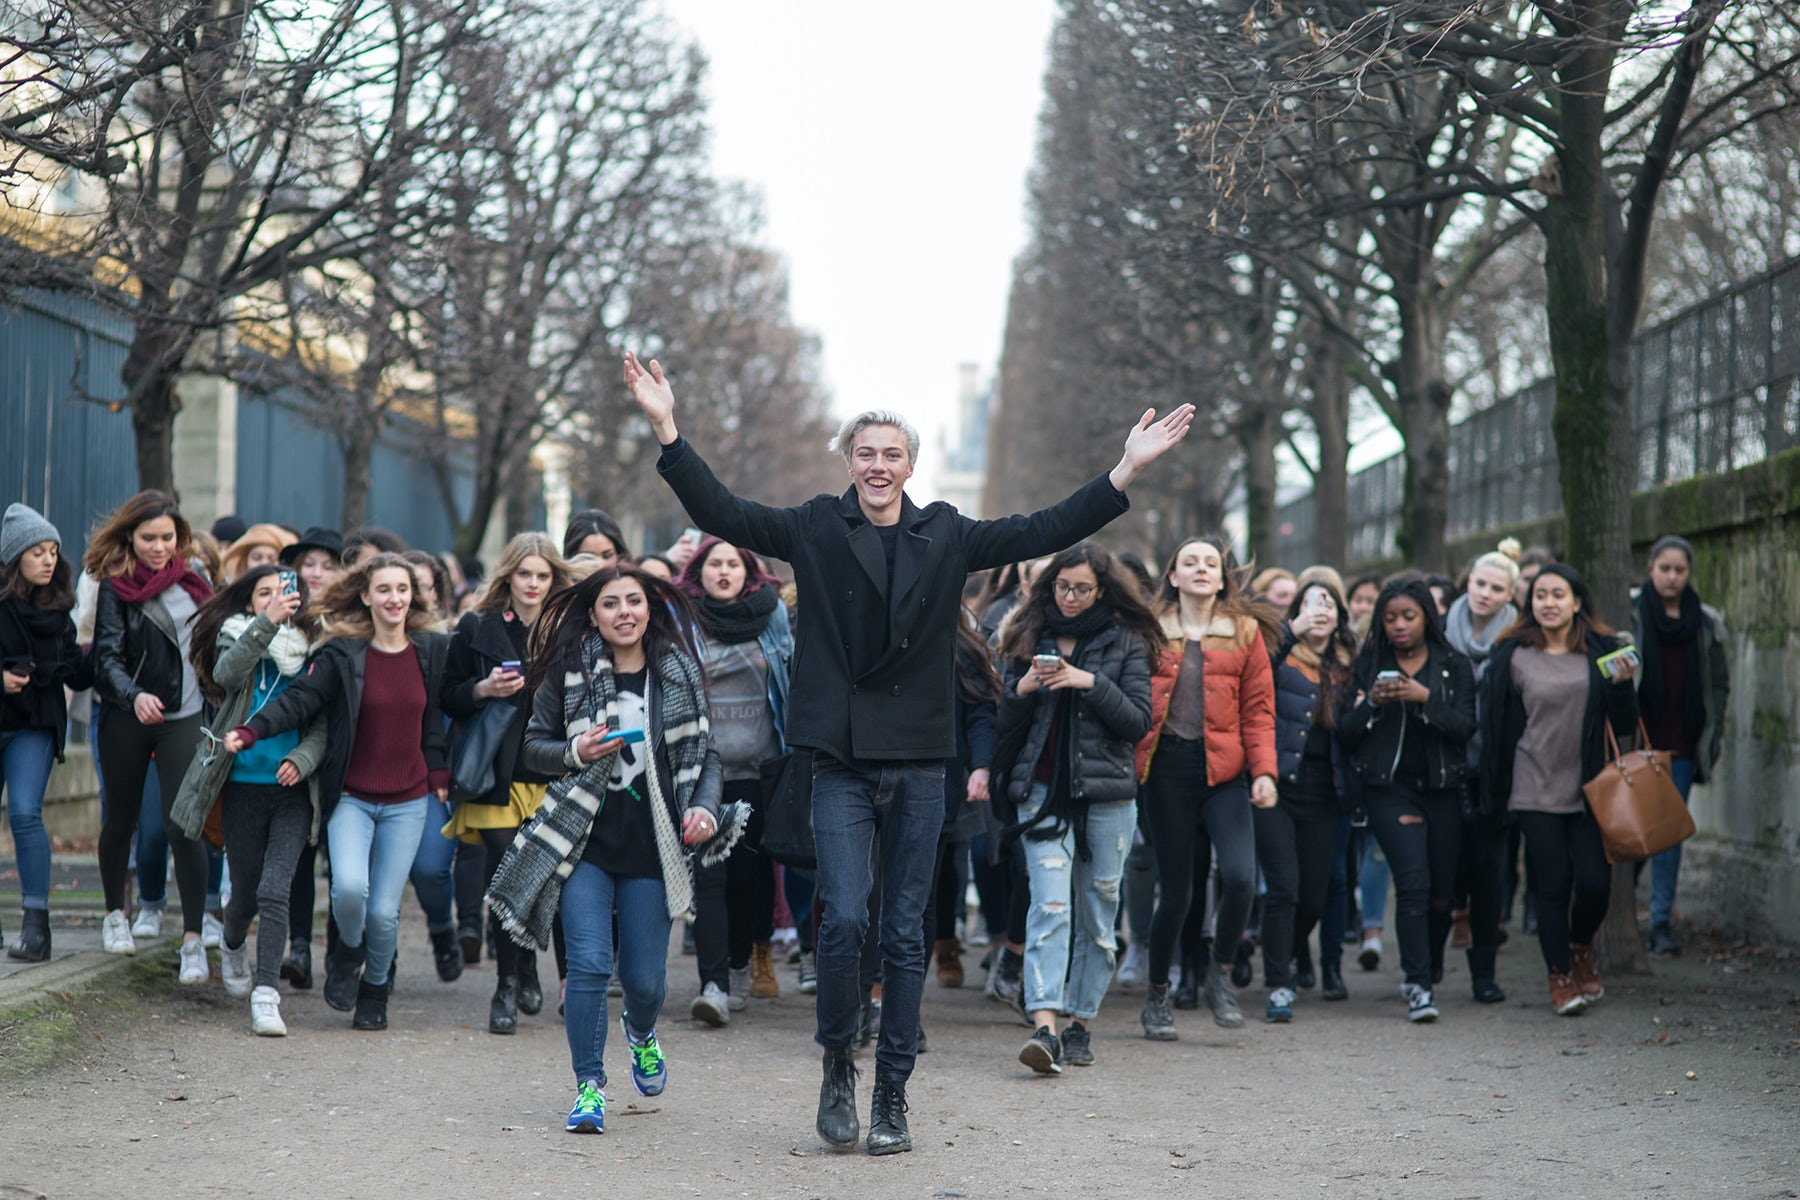 Lucky Blue Smith followed by fans at the Tuileries Garden in Paris | Source: Michael Dumler (On Abbot Kinney)